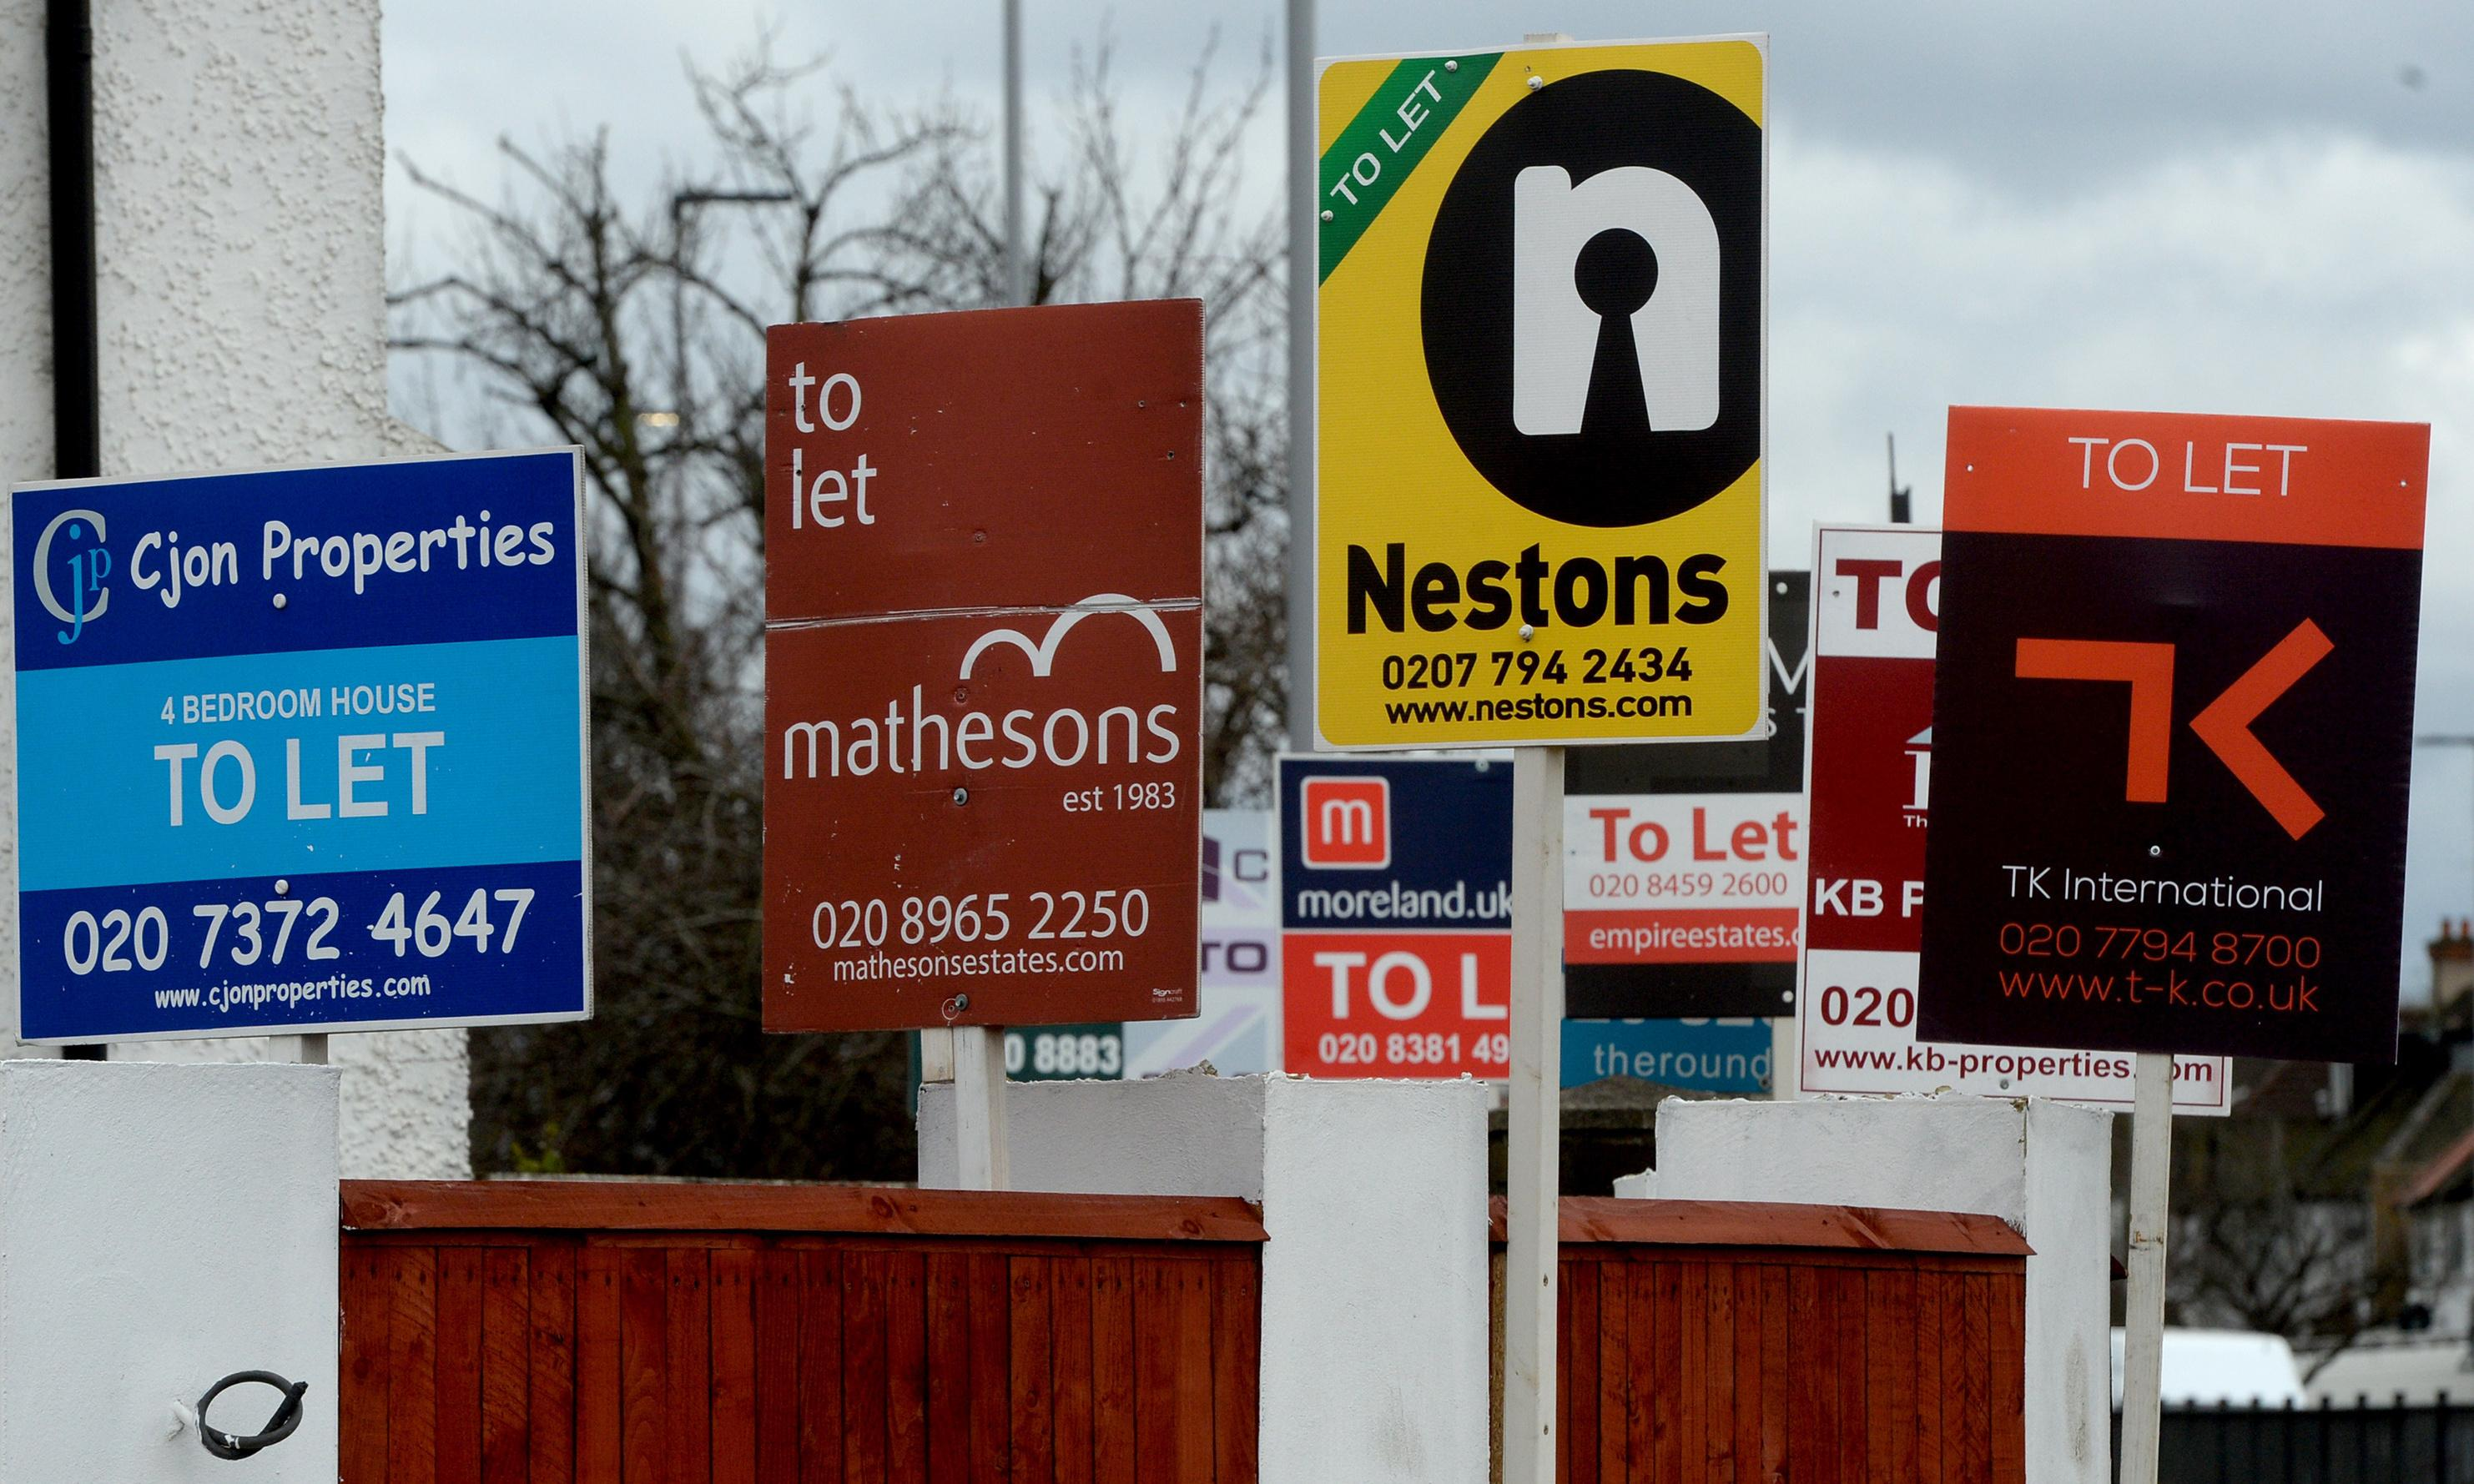 How to stop landlords profiting from homelessness? Compulsory purchase